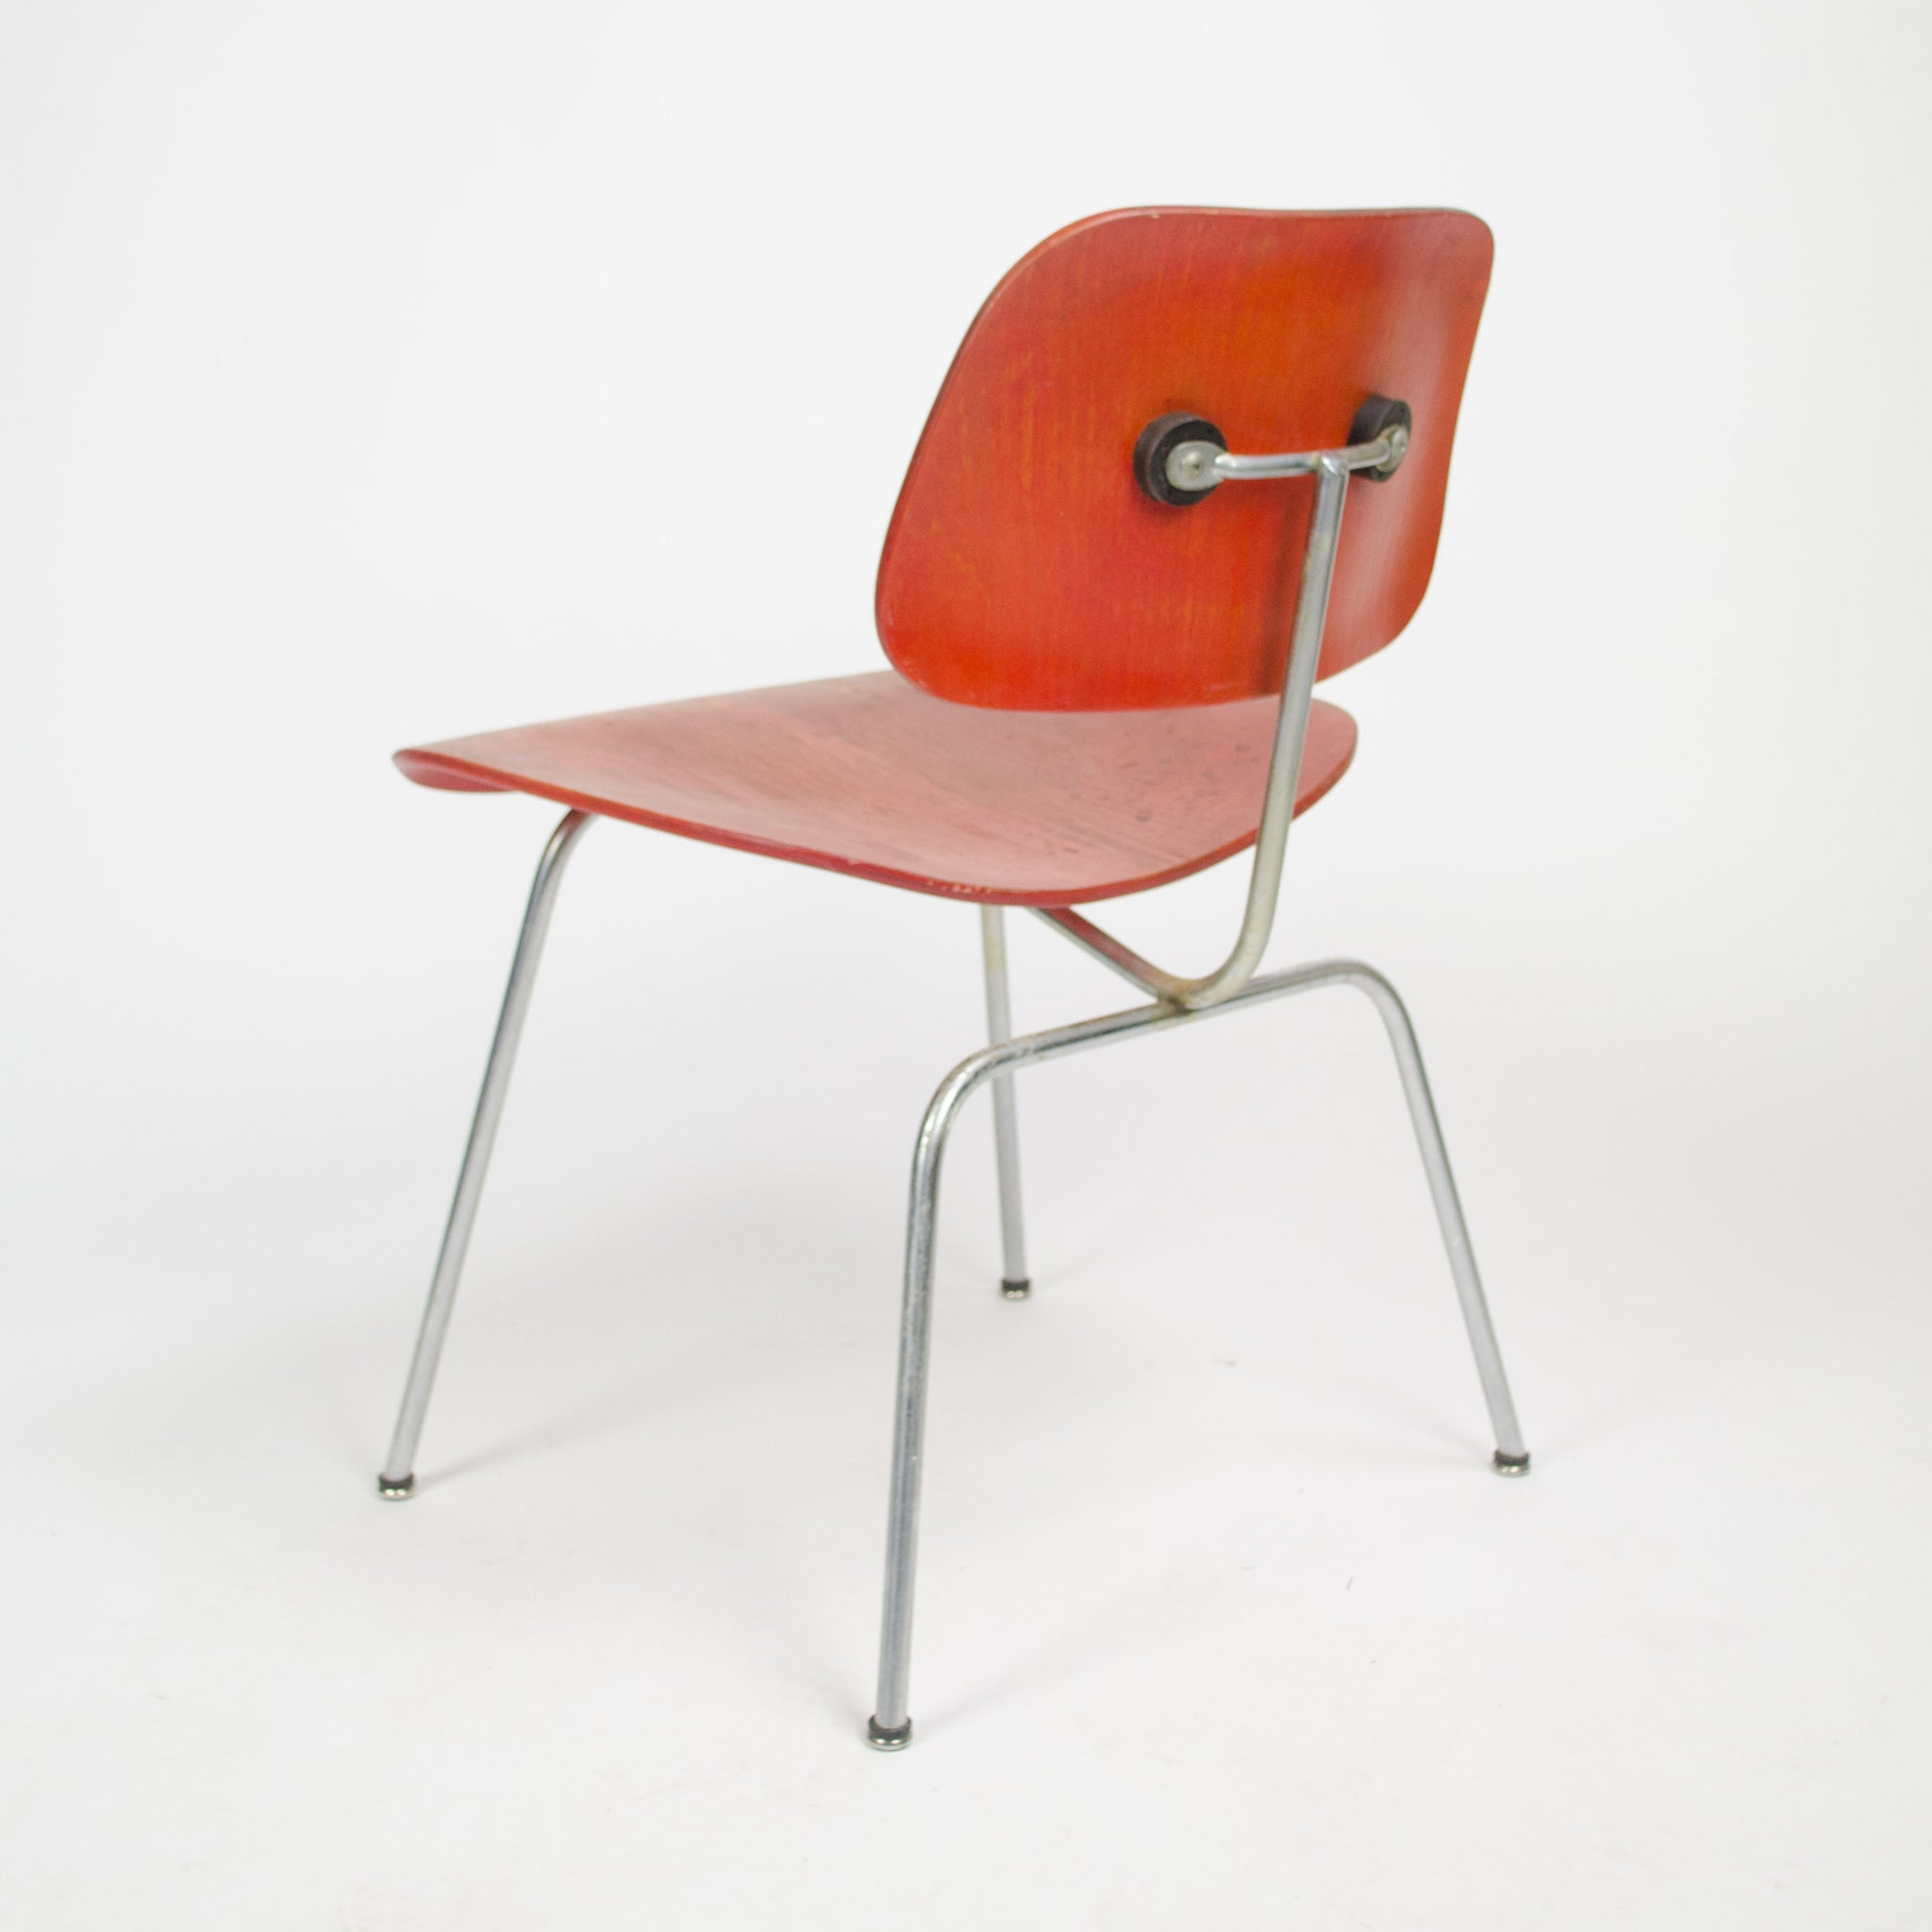 Eames Herman Miller 1951 DCM Dining Chairs Red Aniline Dye 2x Available